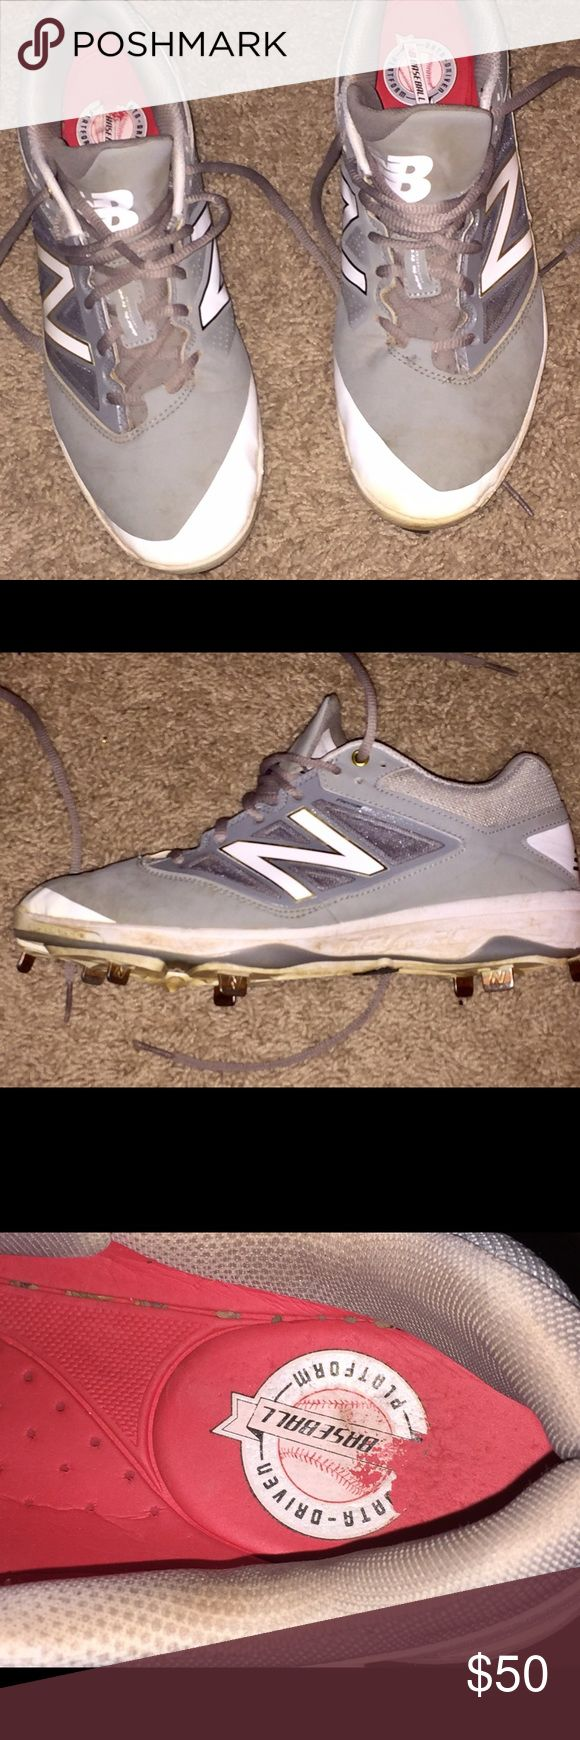 New Balance metal baseball cleats size 10 New Balance metal baseball cleats size 10. Worn for one city league season, still in excellent condition. My son says they're the most comfortable cleats he's ever worn. Original price was over $100 New Balance Shoes Athletic Shoes